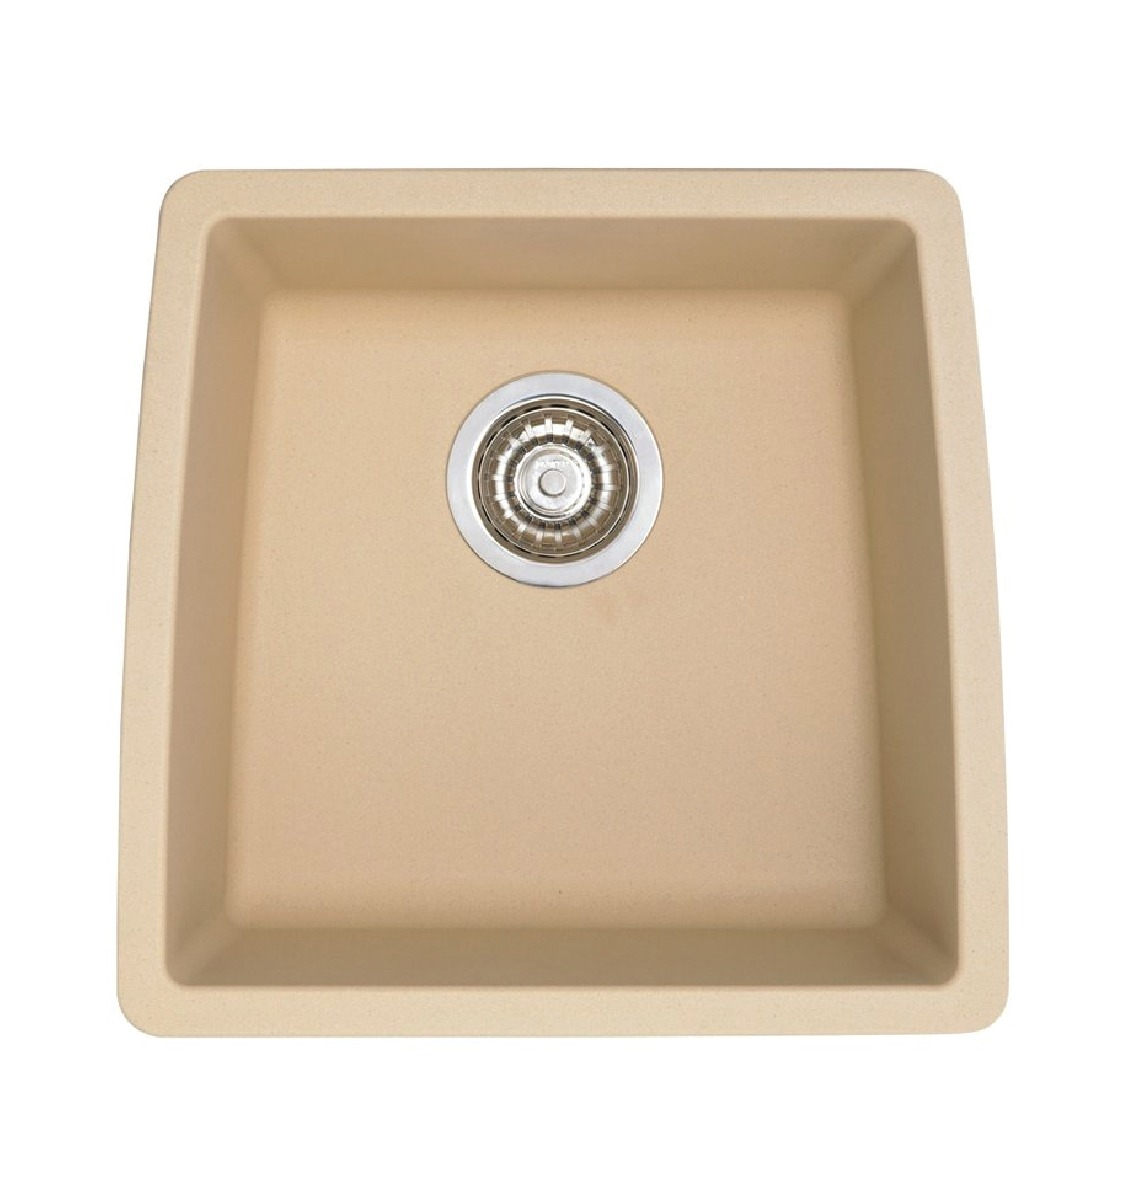 Silgranit Sink : ... 441224 Performa Silgranit II Single Bowl Sink, Biscotti - Schilling